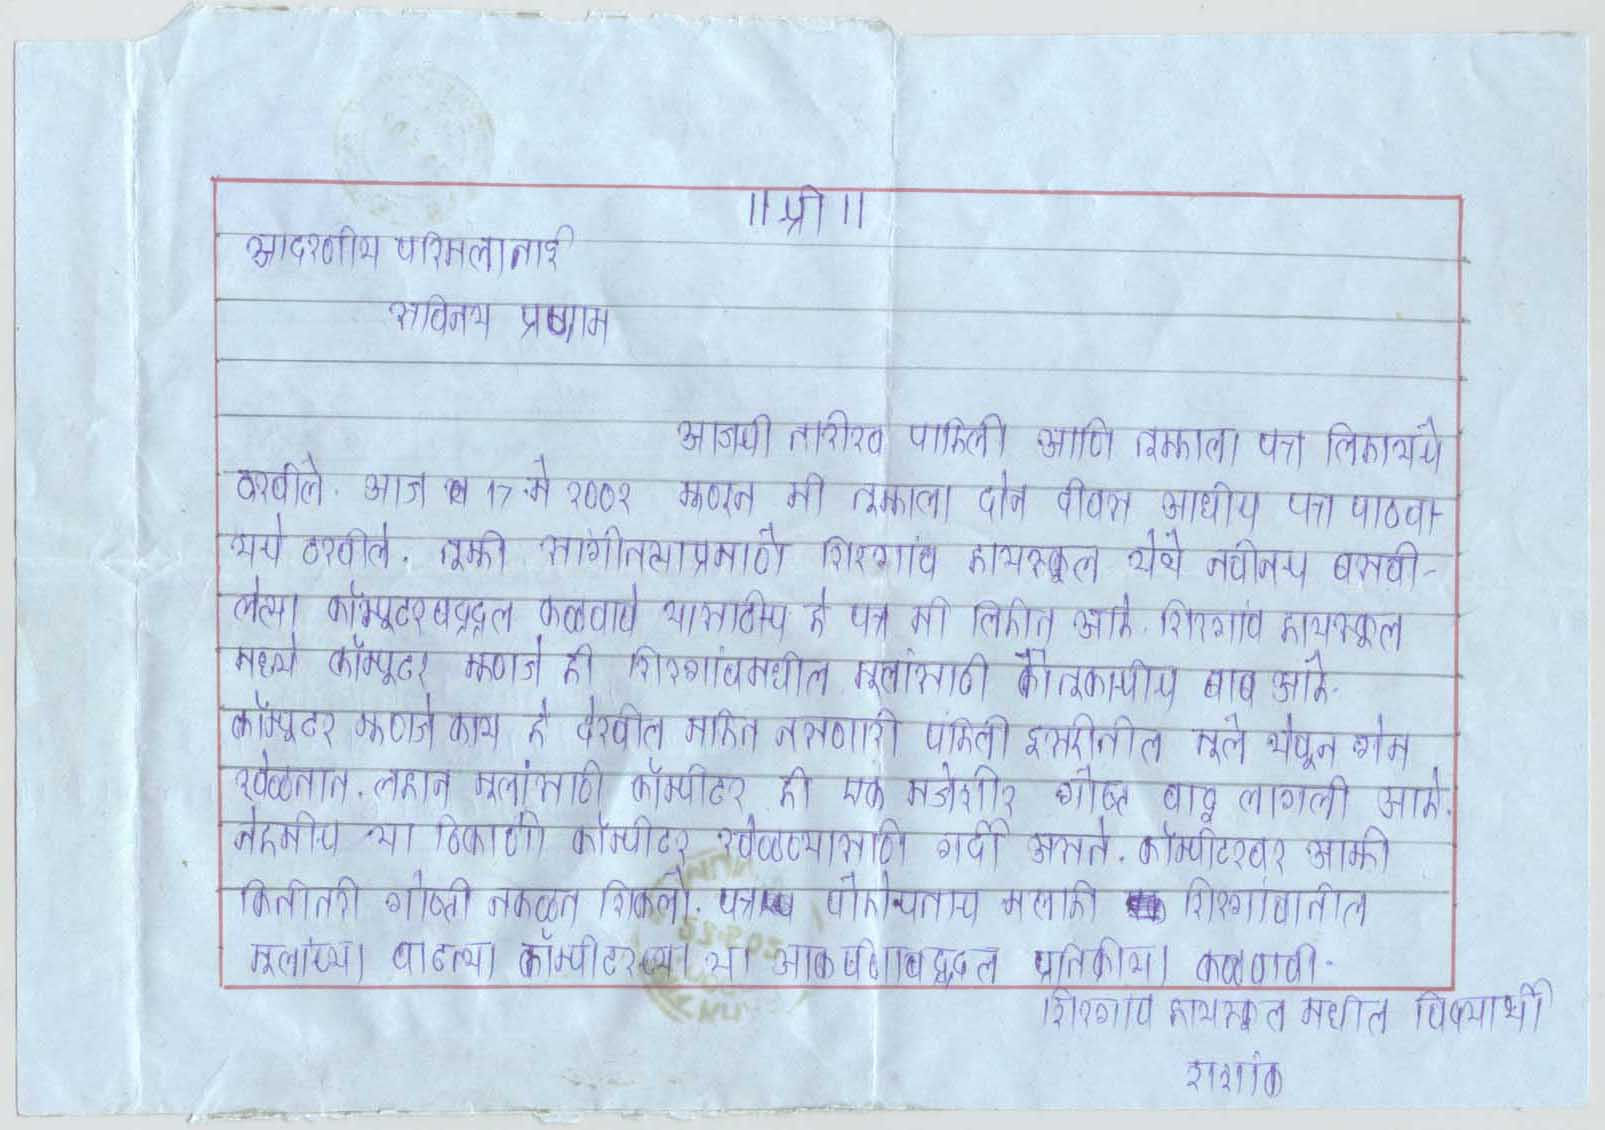 Letter In Marathi The Best Essay Writing Service In The Uk Is Ready To Help Now Finally